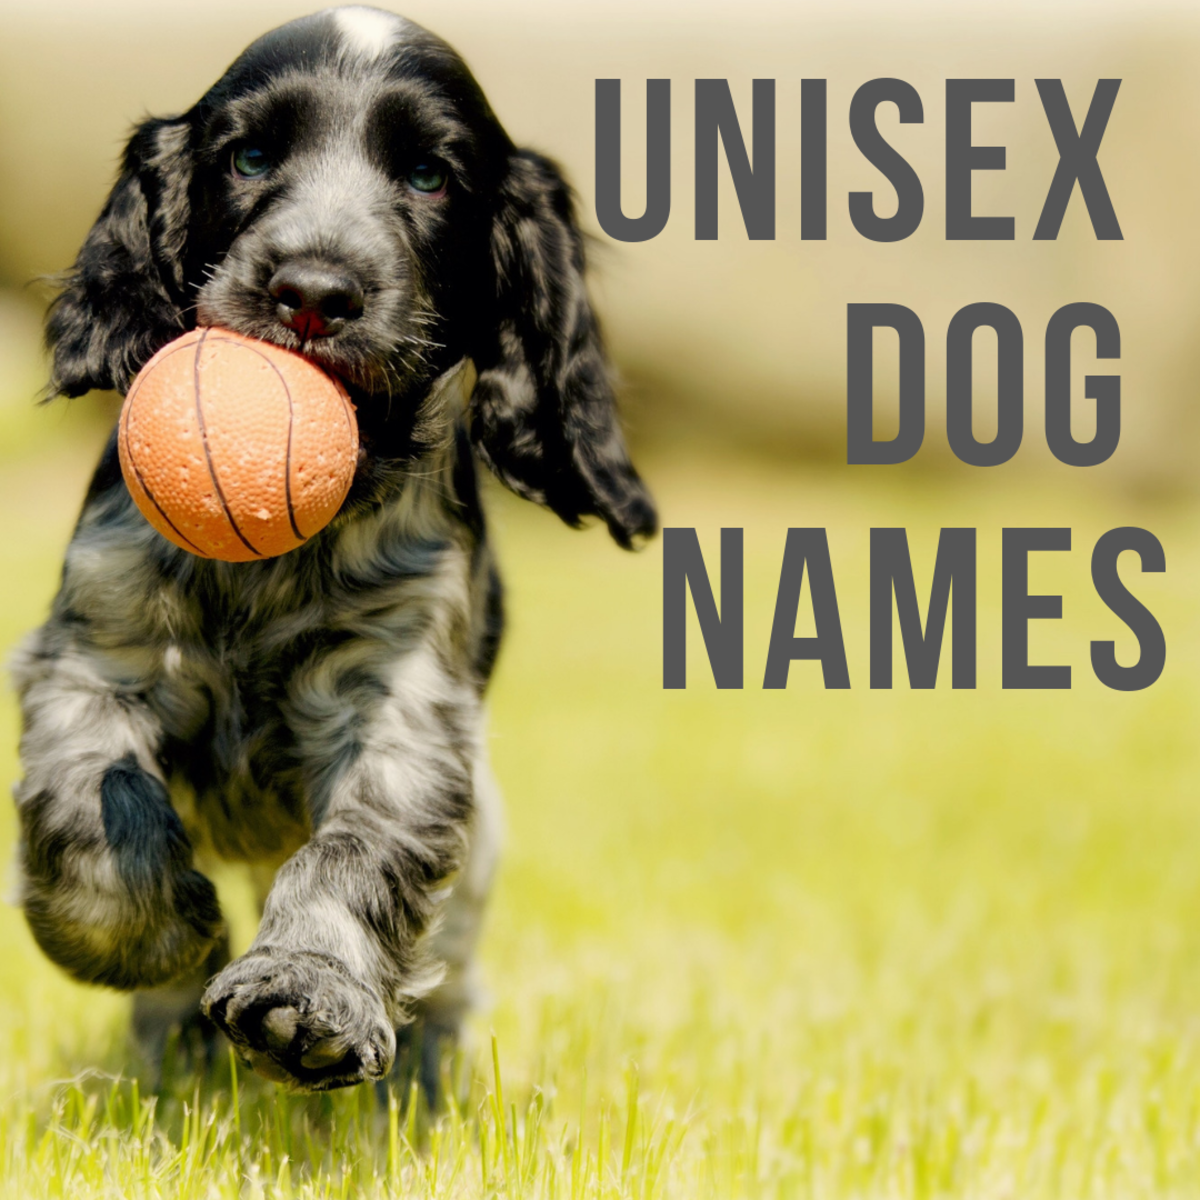 100+ Unisex Dogs Names That Work for Both Male & Female Pets